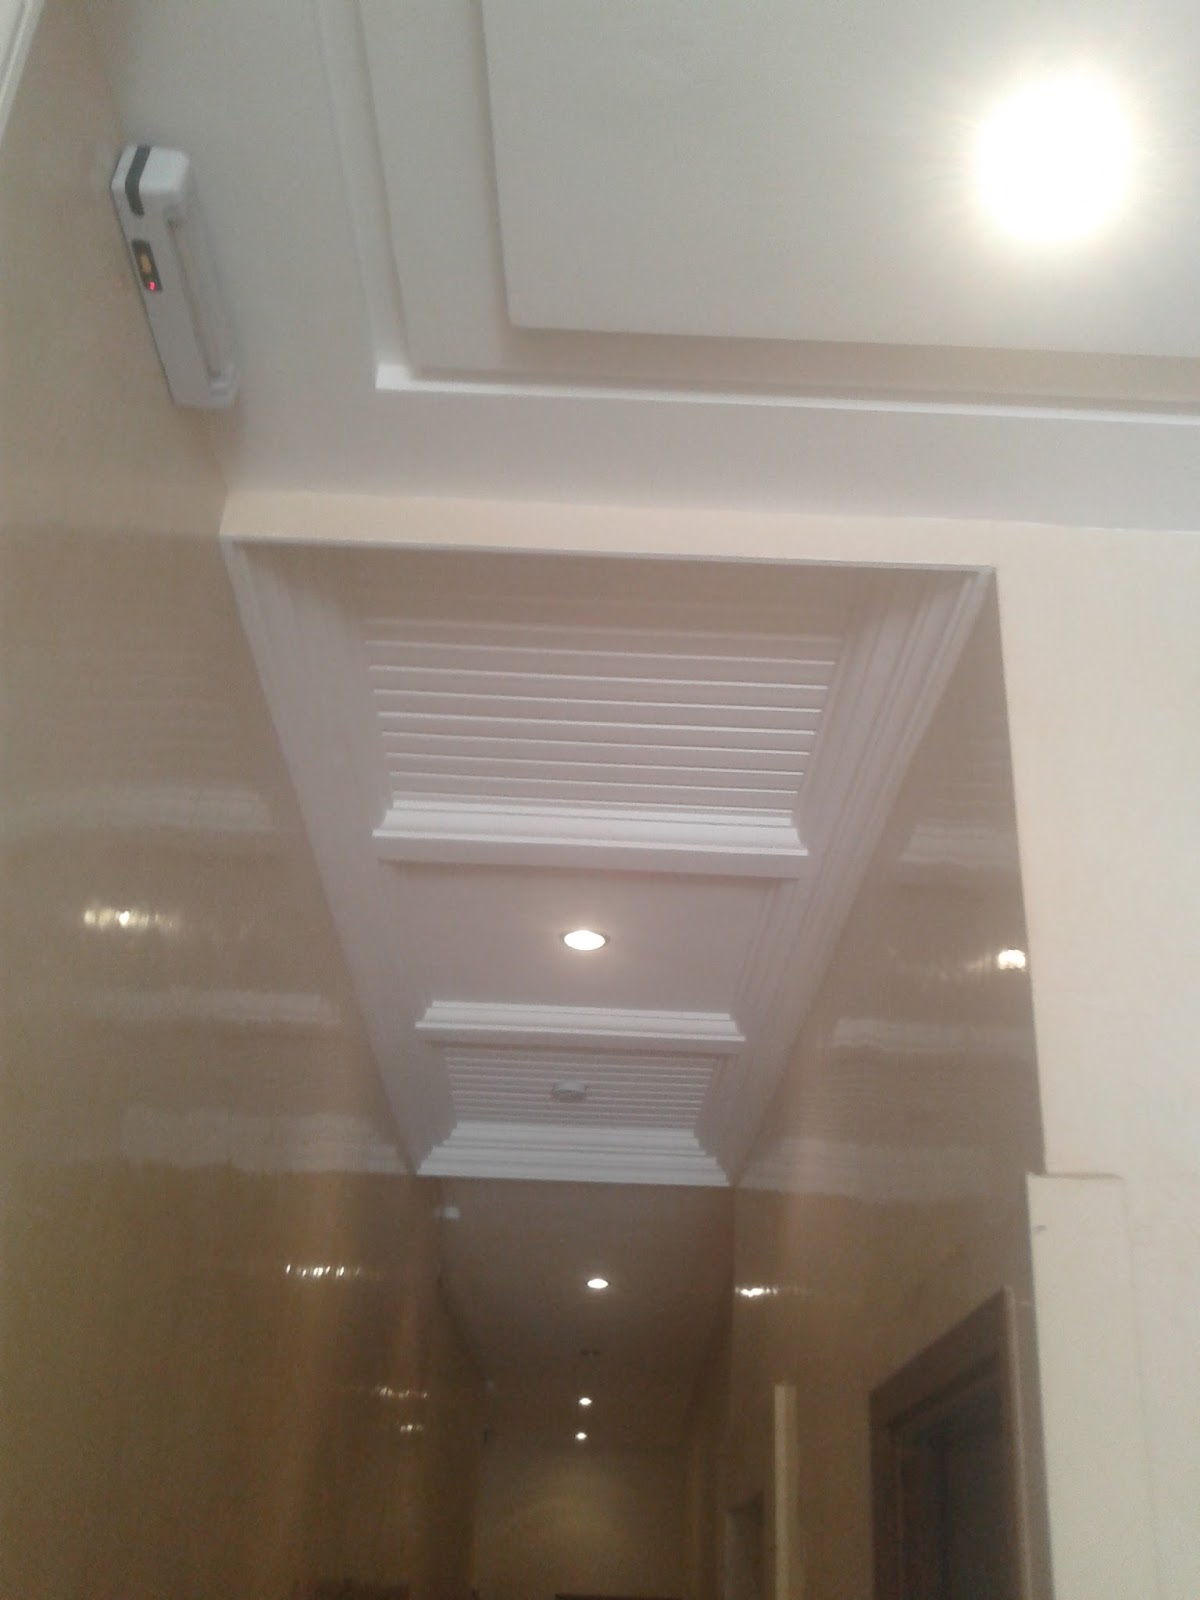 Platre plafond simple  Maison  Travaux